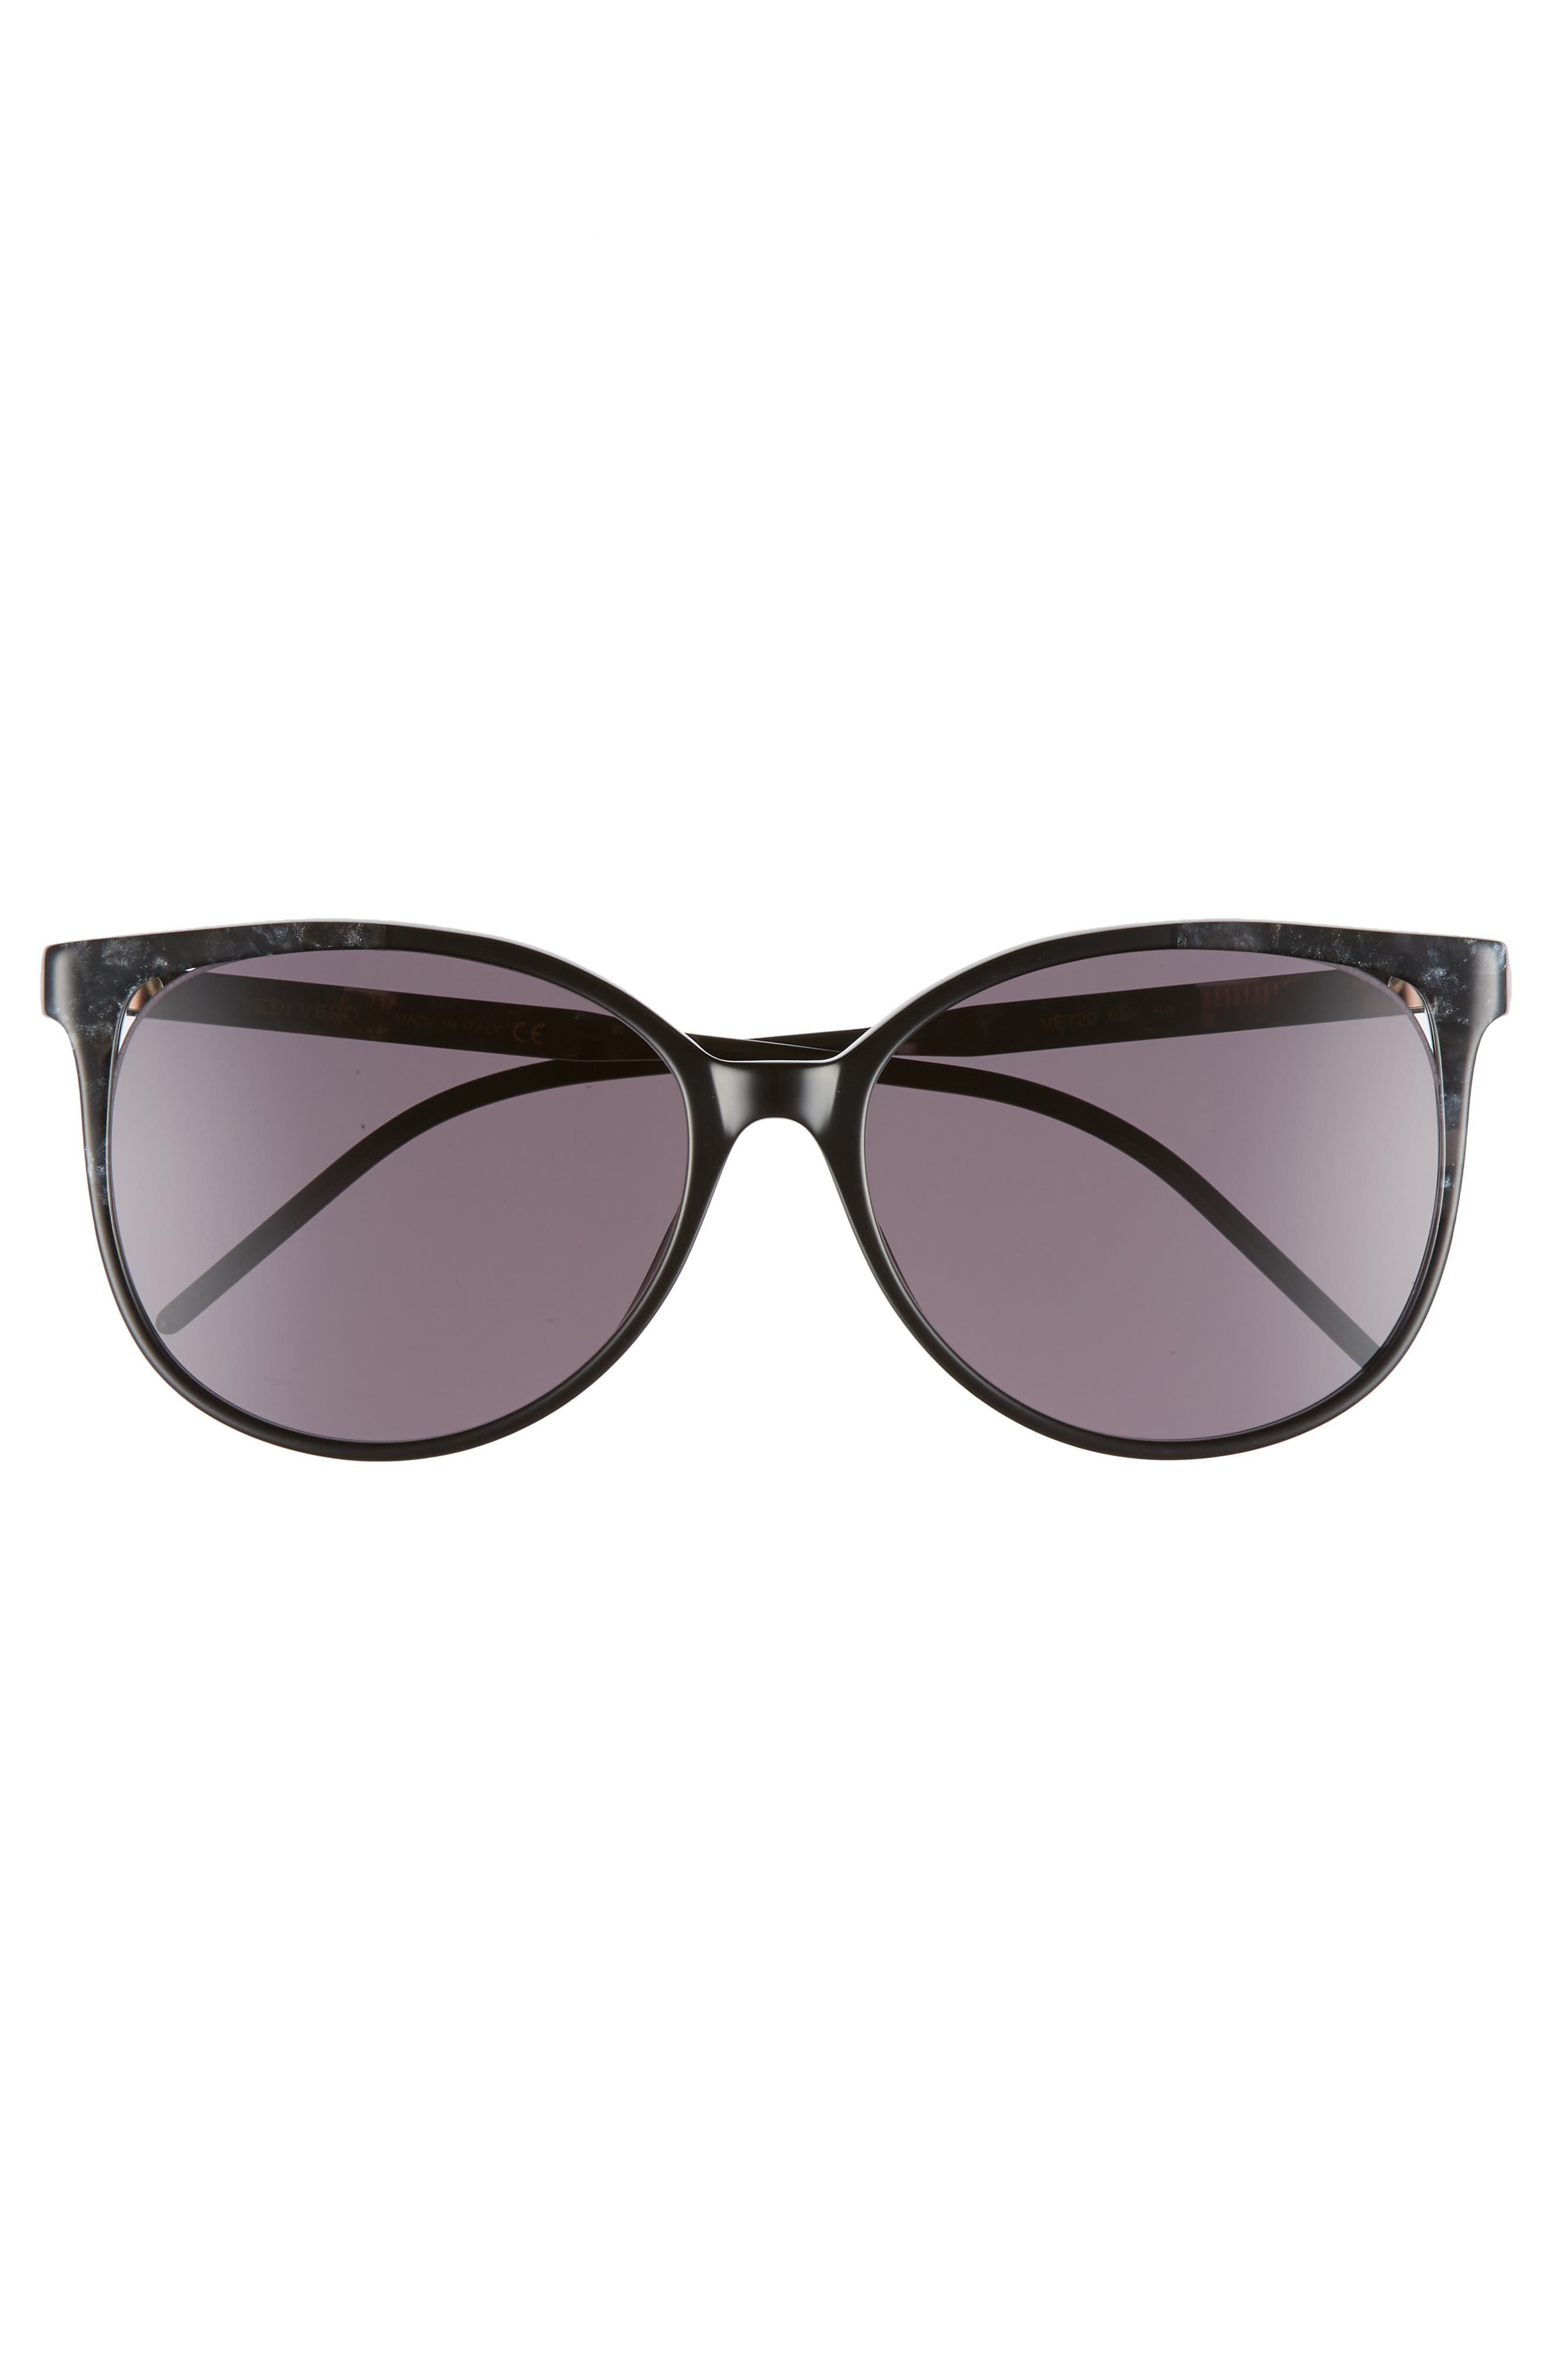 59mm Round Sunglasses,                             Alternate thumbnail 3, color,                             Black/Brown